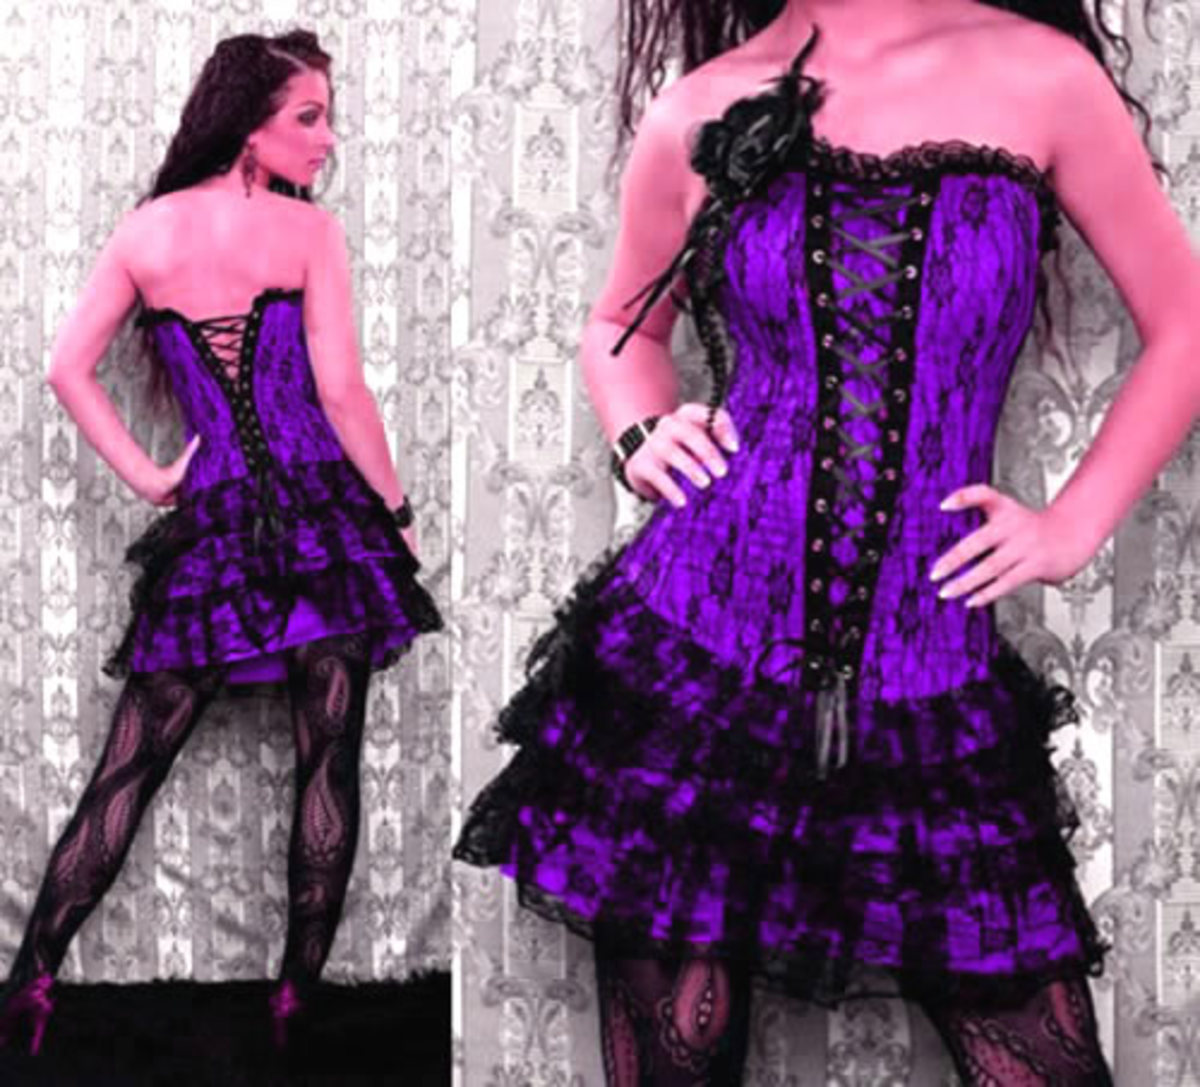 Sexy Purple Strapless Lace Up Corset Dress with a decorative Rose Accent